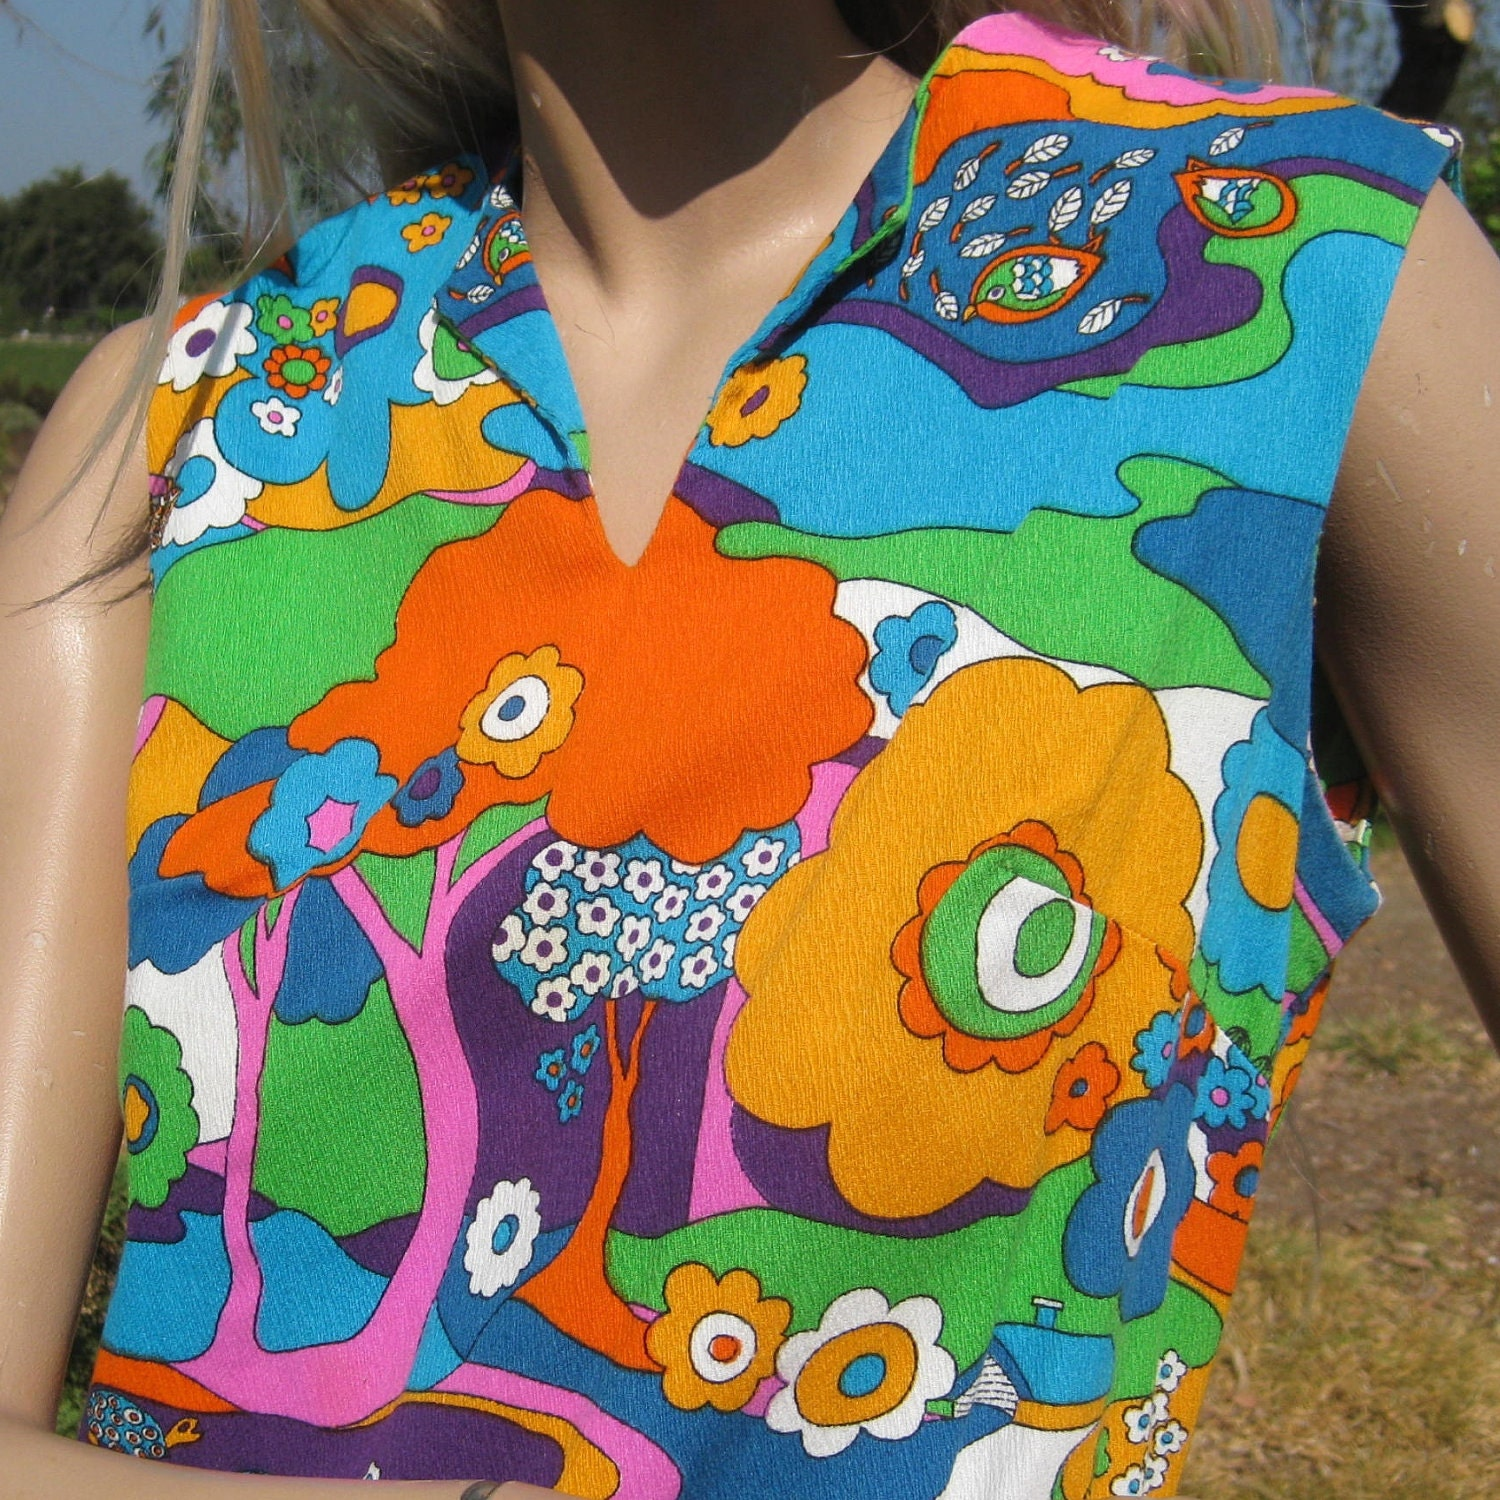 Reserved Vintage 60s Mod Peter Max Style Psychedelic Dream  Peter Max 60s